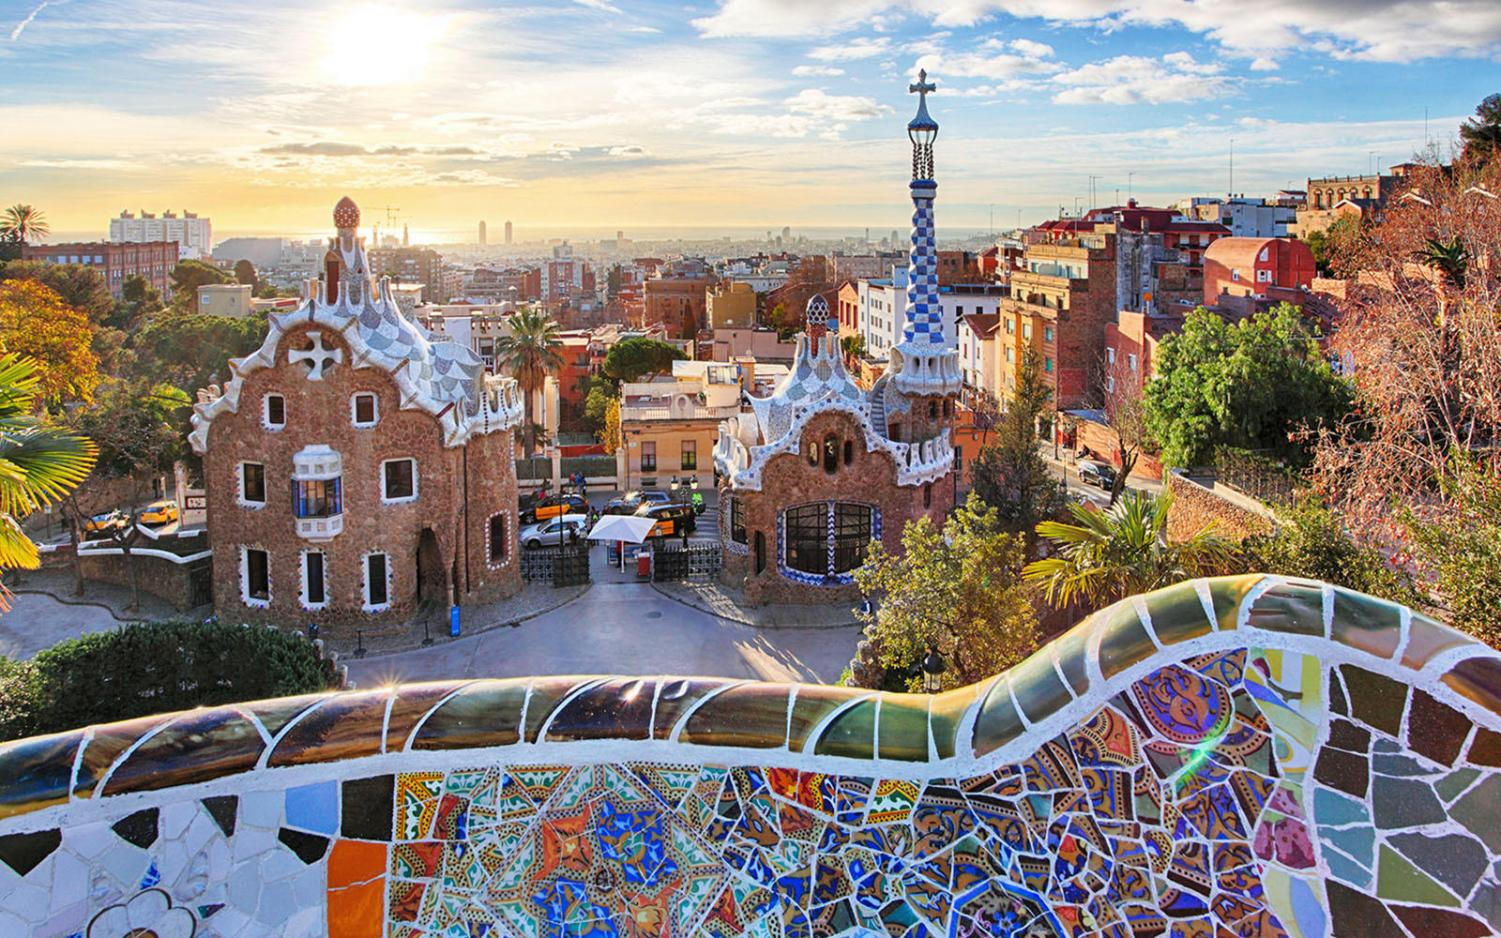 A beautiful overview of Barcelona where current freshman and sophomores